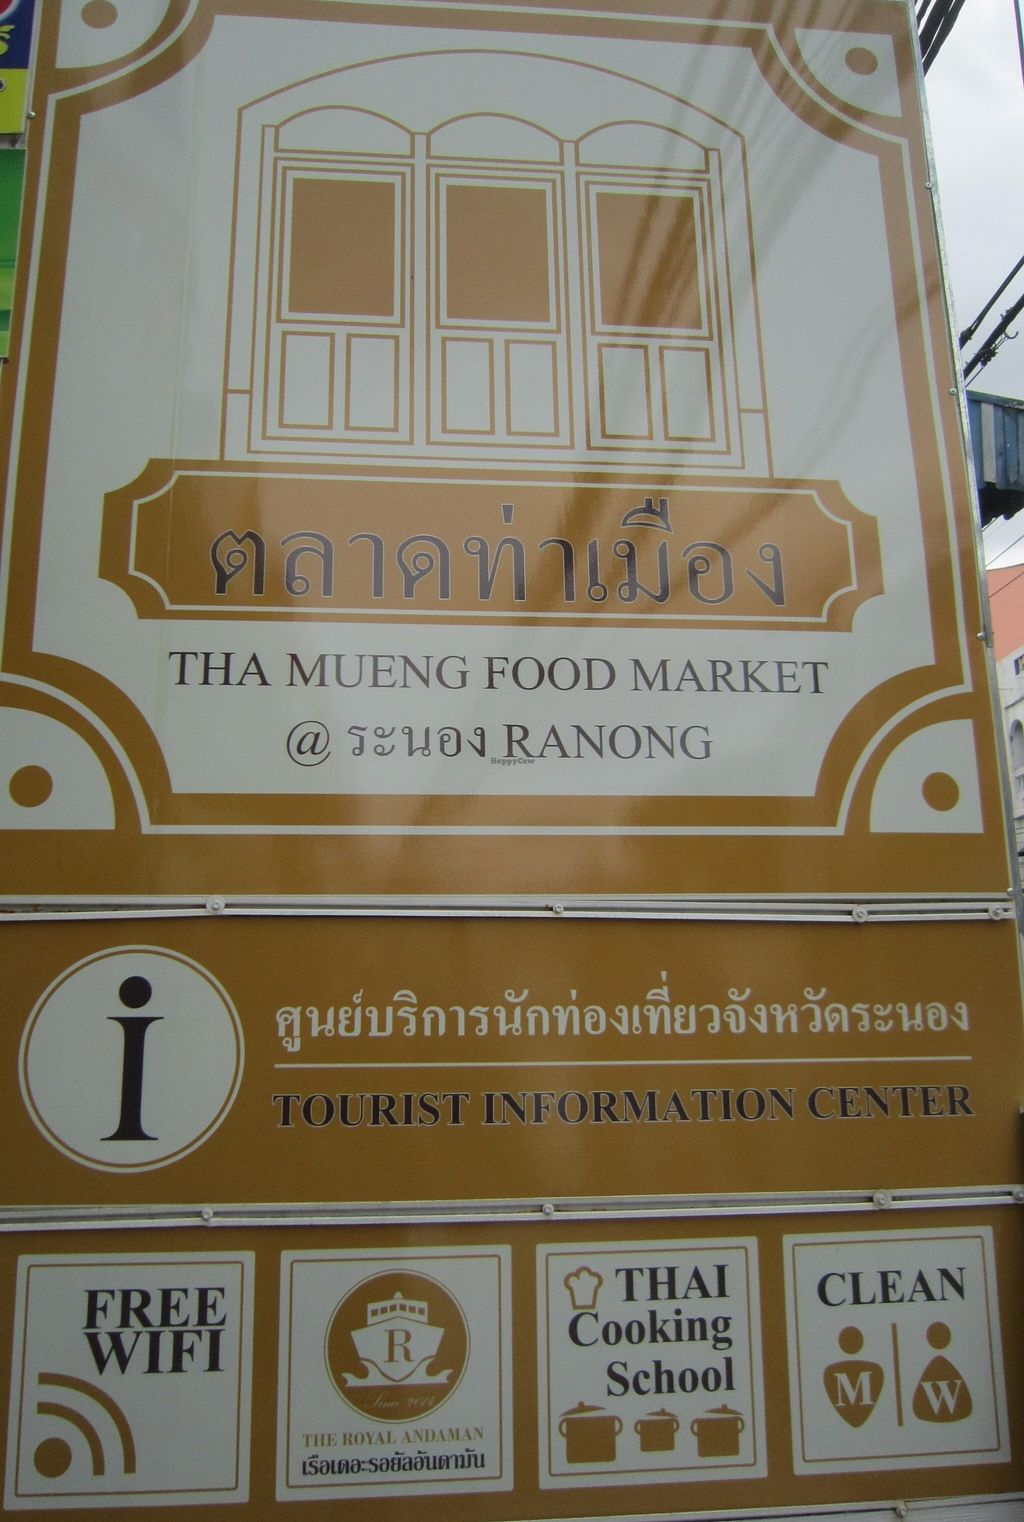 """Photo of CLOSED: Nam Mangosteen Thailand   by <a href=""""/members/profile/IanSmith"""">IanSmith</a> <br/>This is the sign out the front of the food market where Nam Mangosteen Thailand is located <br/> September 23, 2015  - <a href='/contact/abuse/image/61185/118829'>Report</a>"""